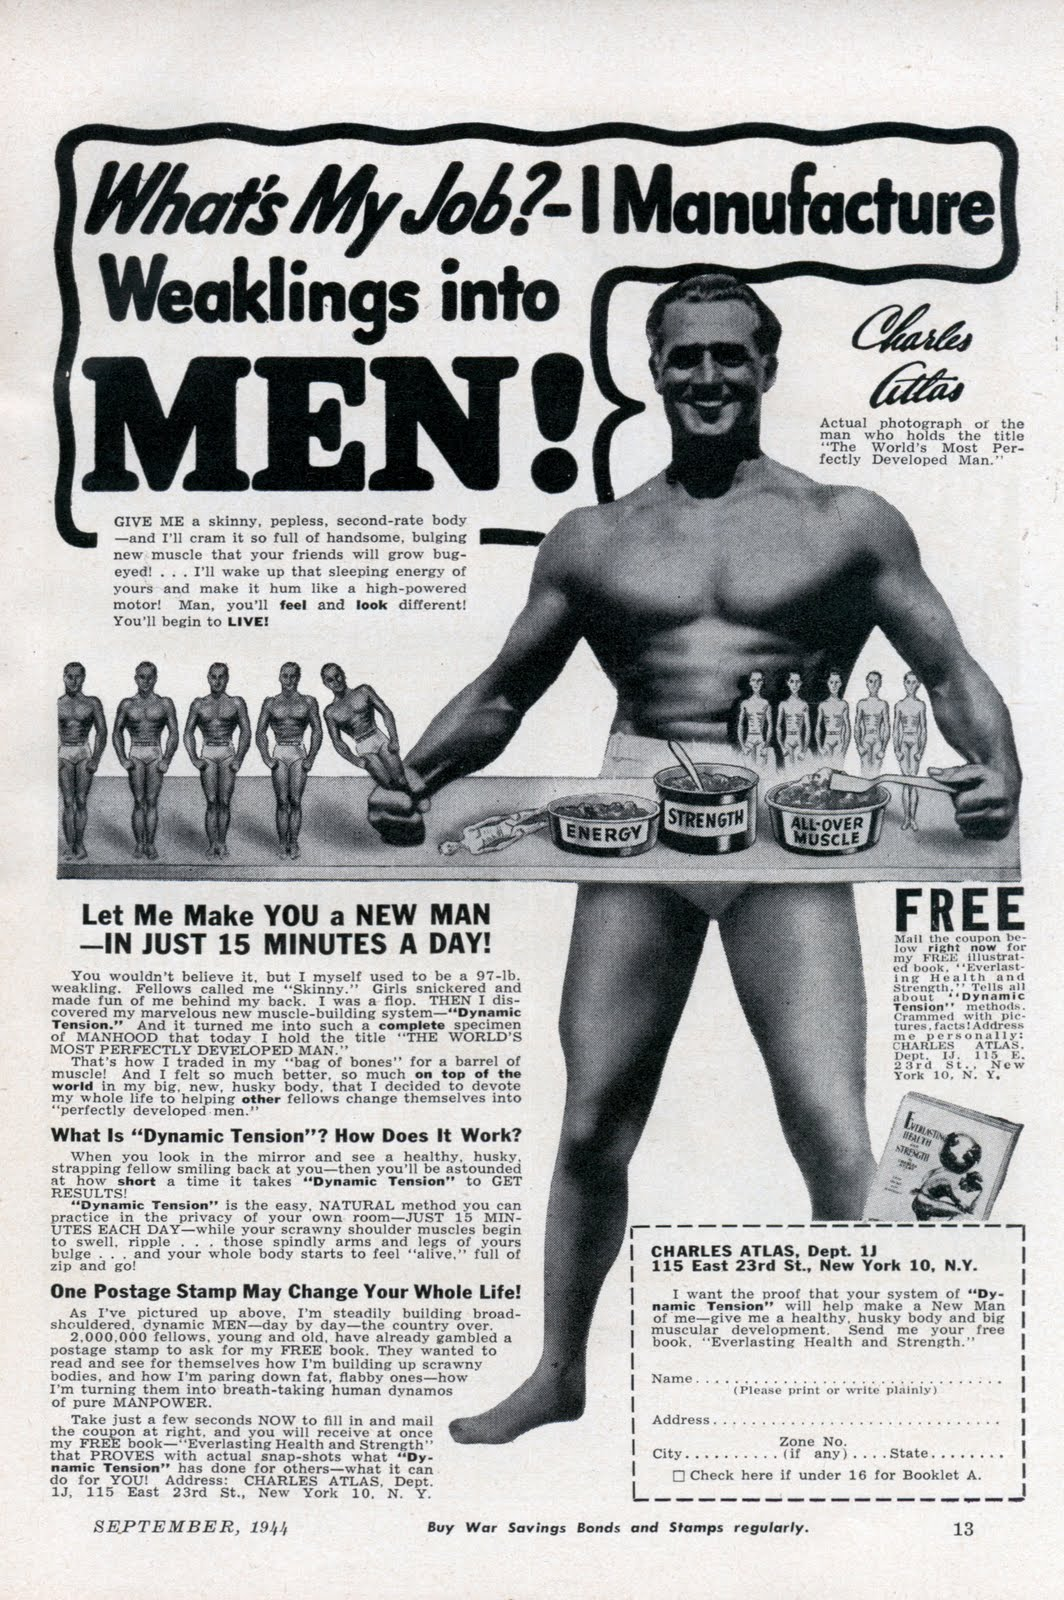 A 1944 advertisement (click to enlarge).